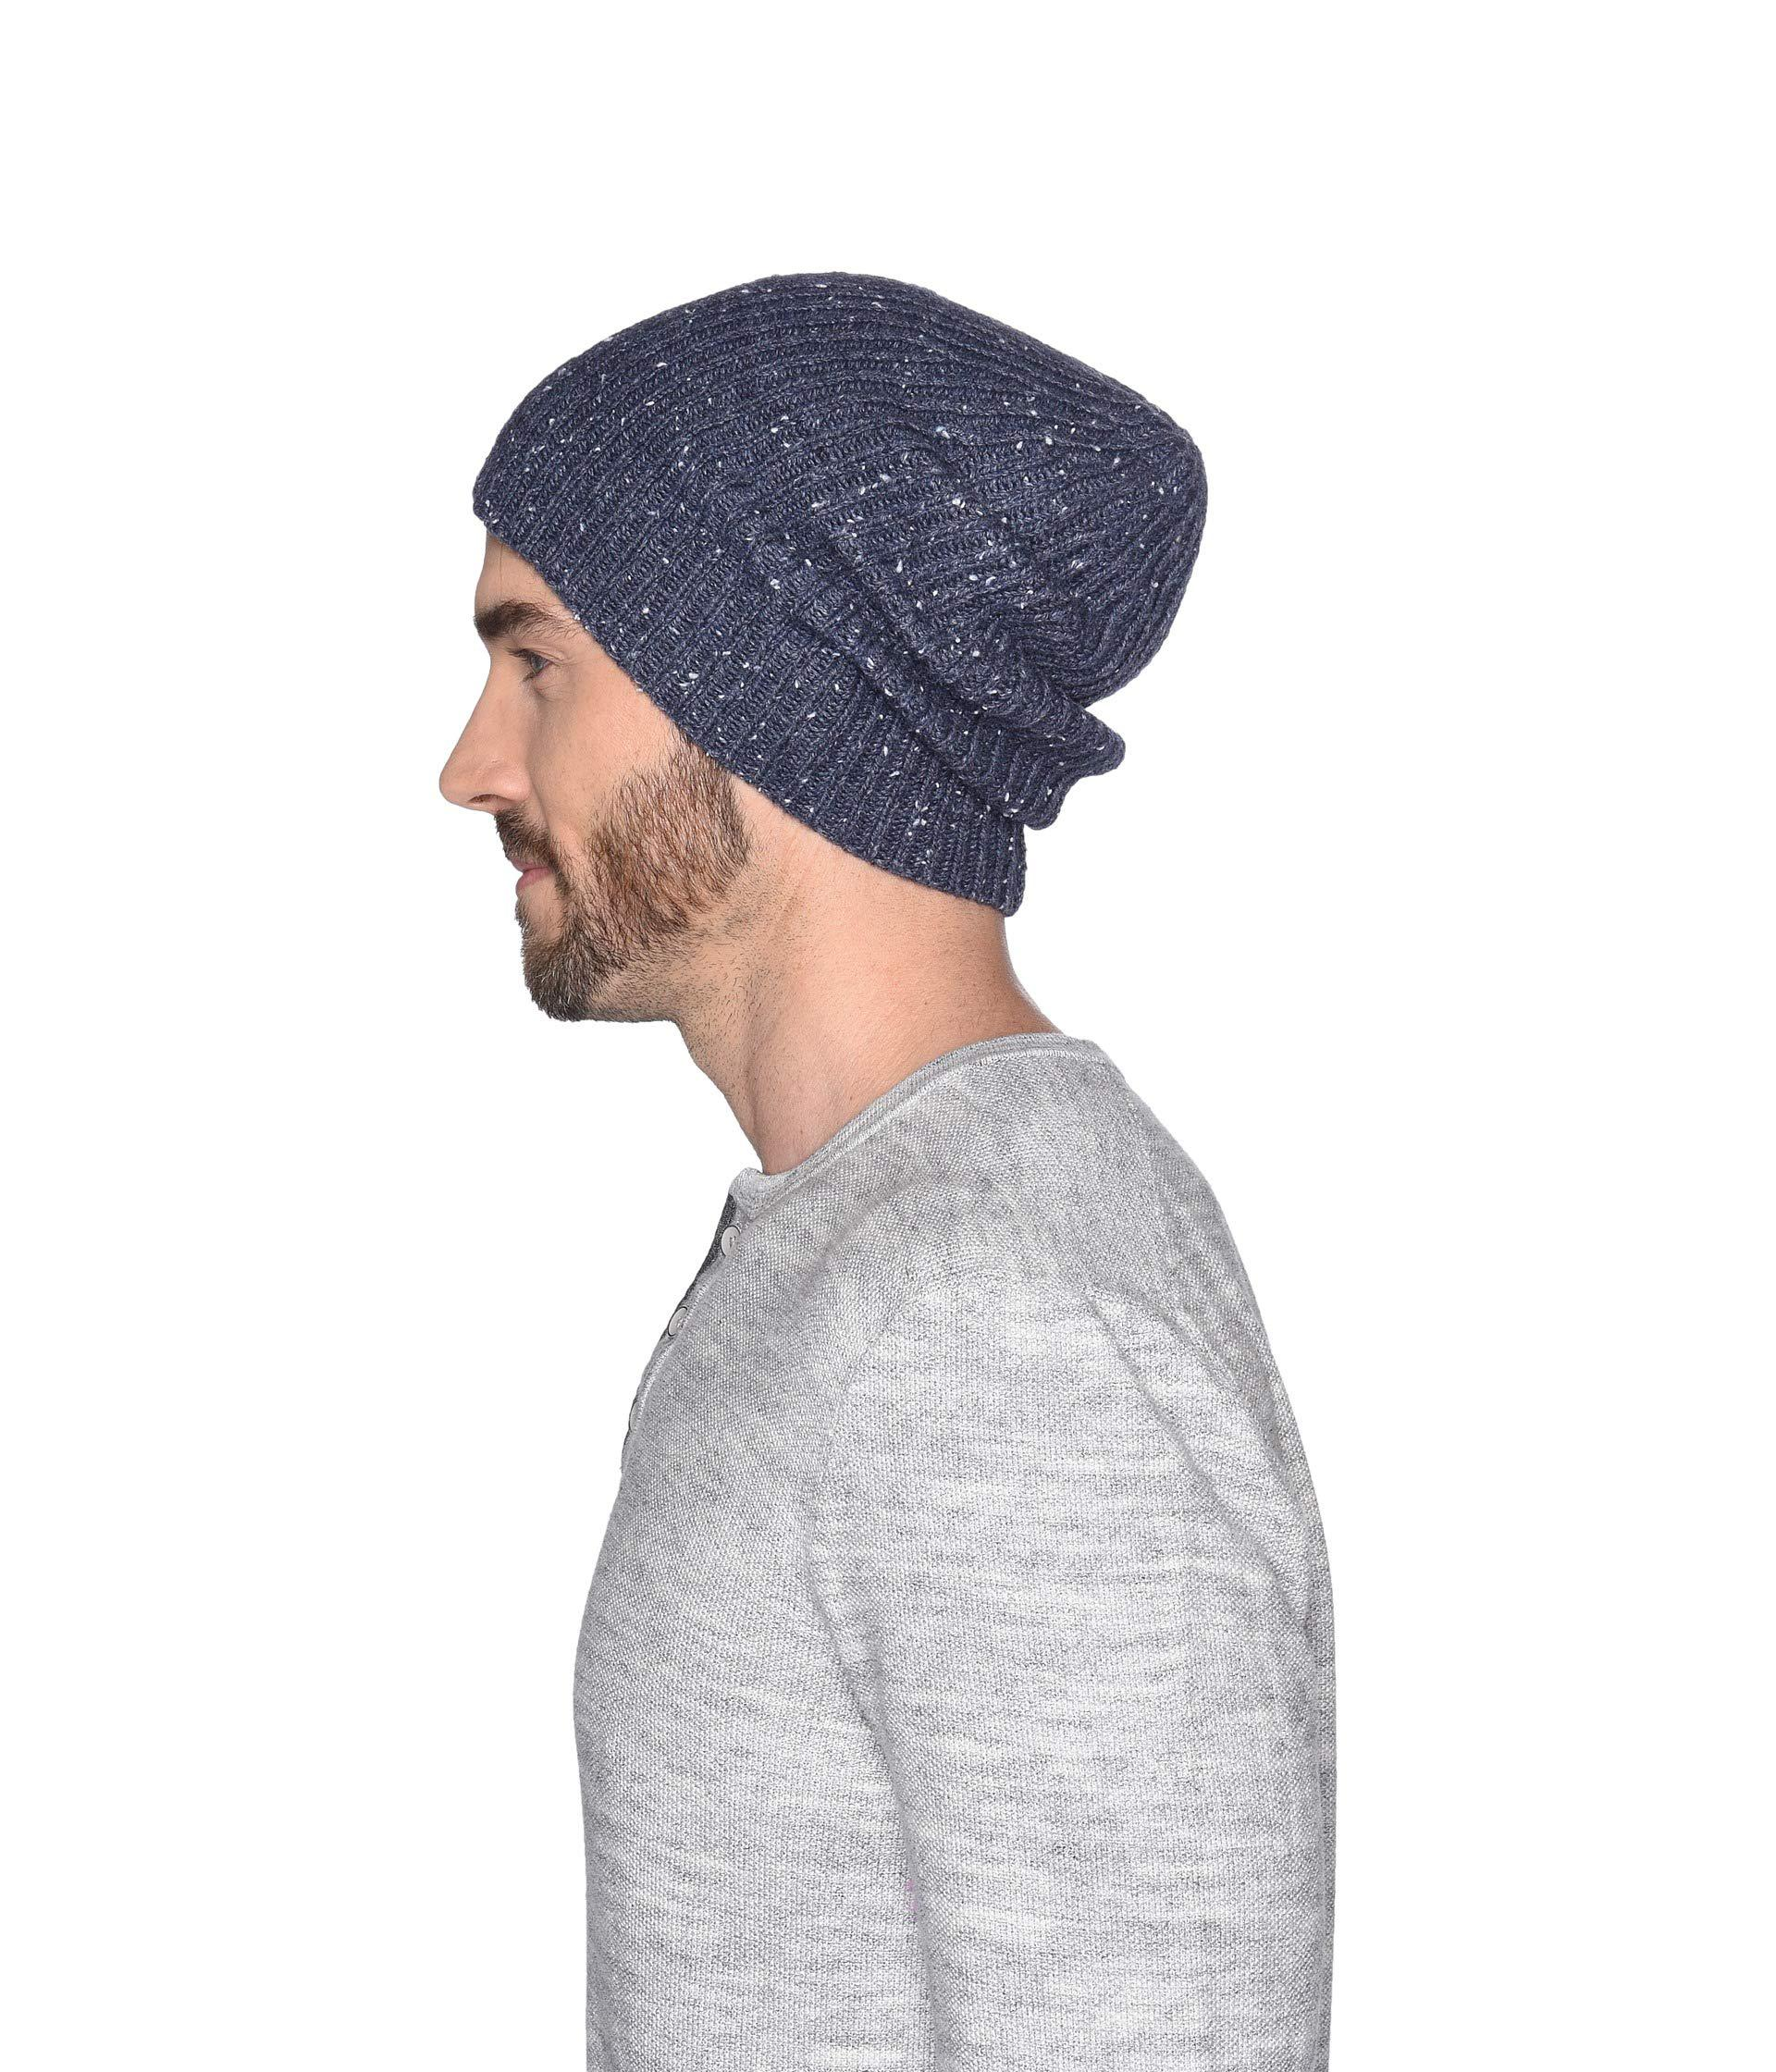 ad1c97feb01 Lyst - UGG Stonewashed Cuff Knit Hat (oceanic Heather) Beanies in ...